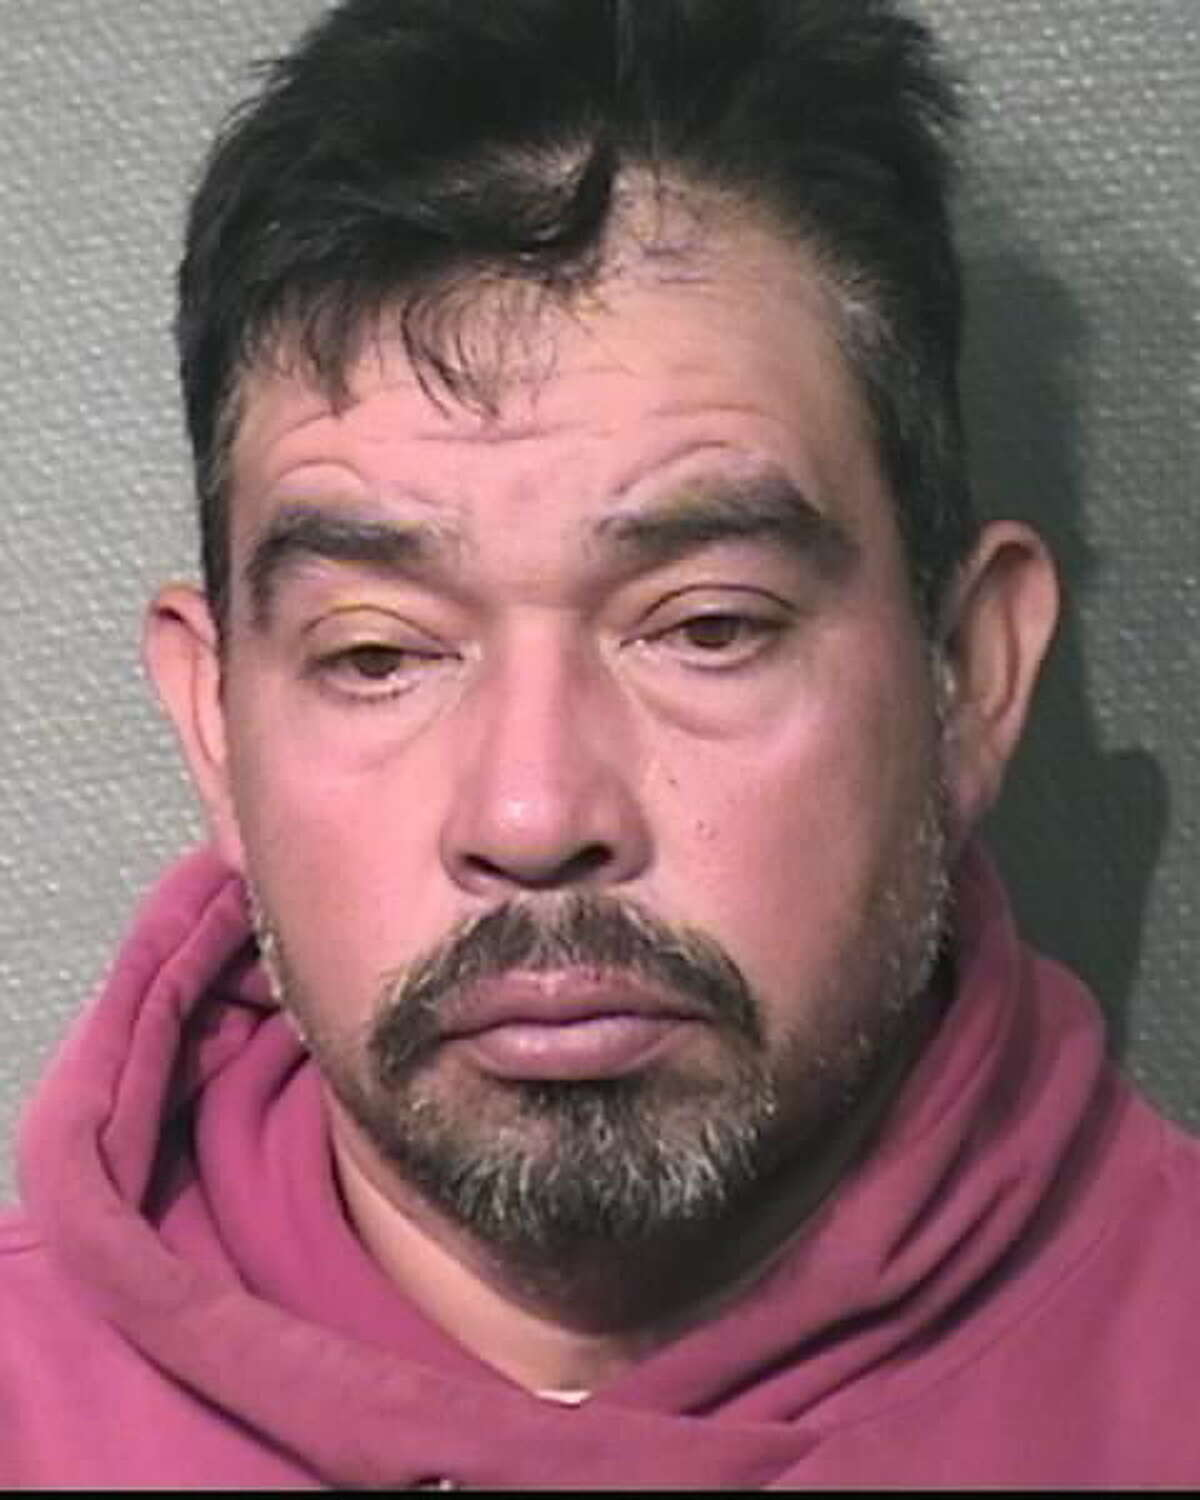 Jaime Ledesma was arrested in November 2017 on a third charge of DWI.